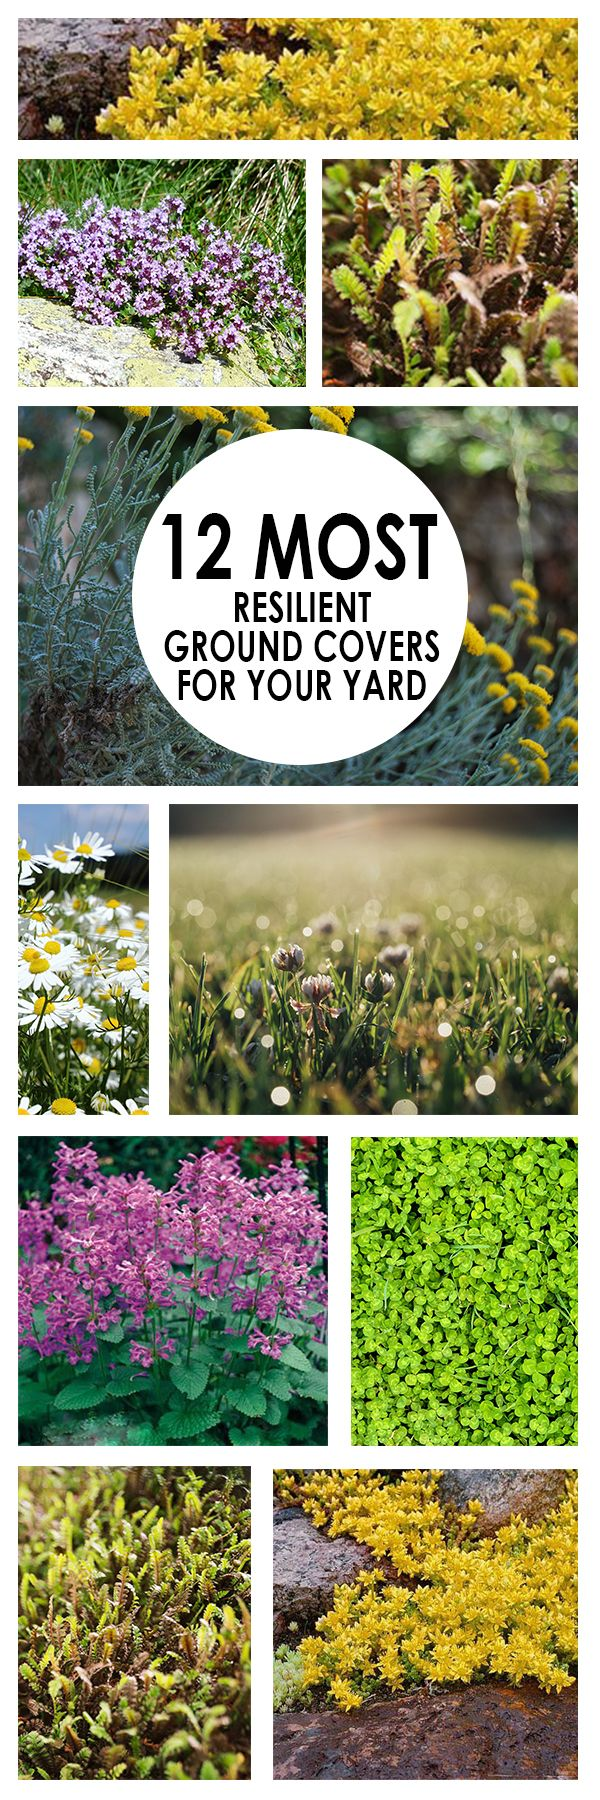 12 Most Resilient Ground Covers for Your Yard